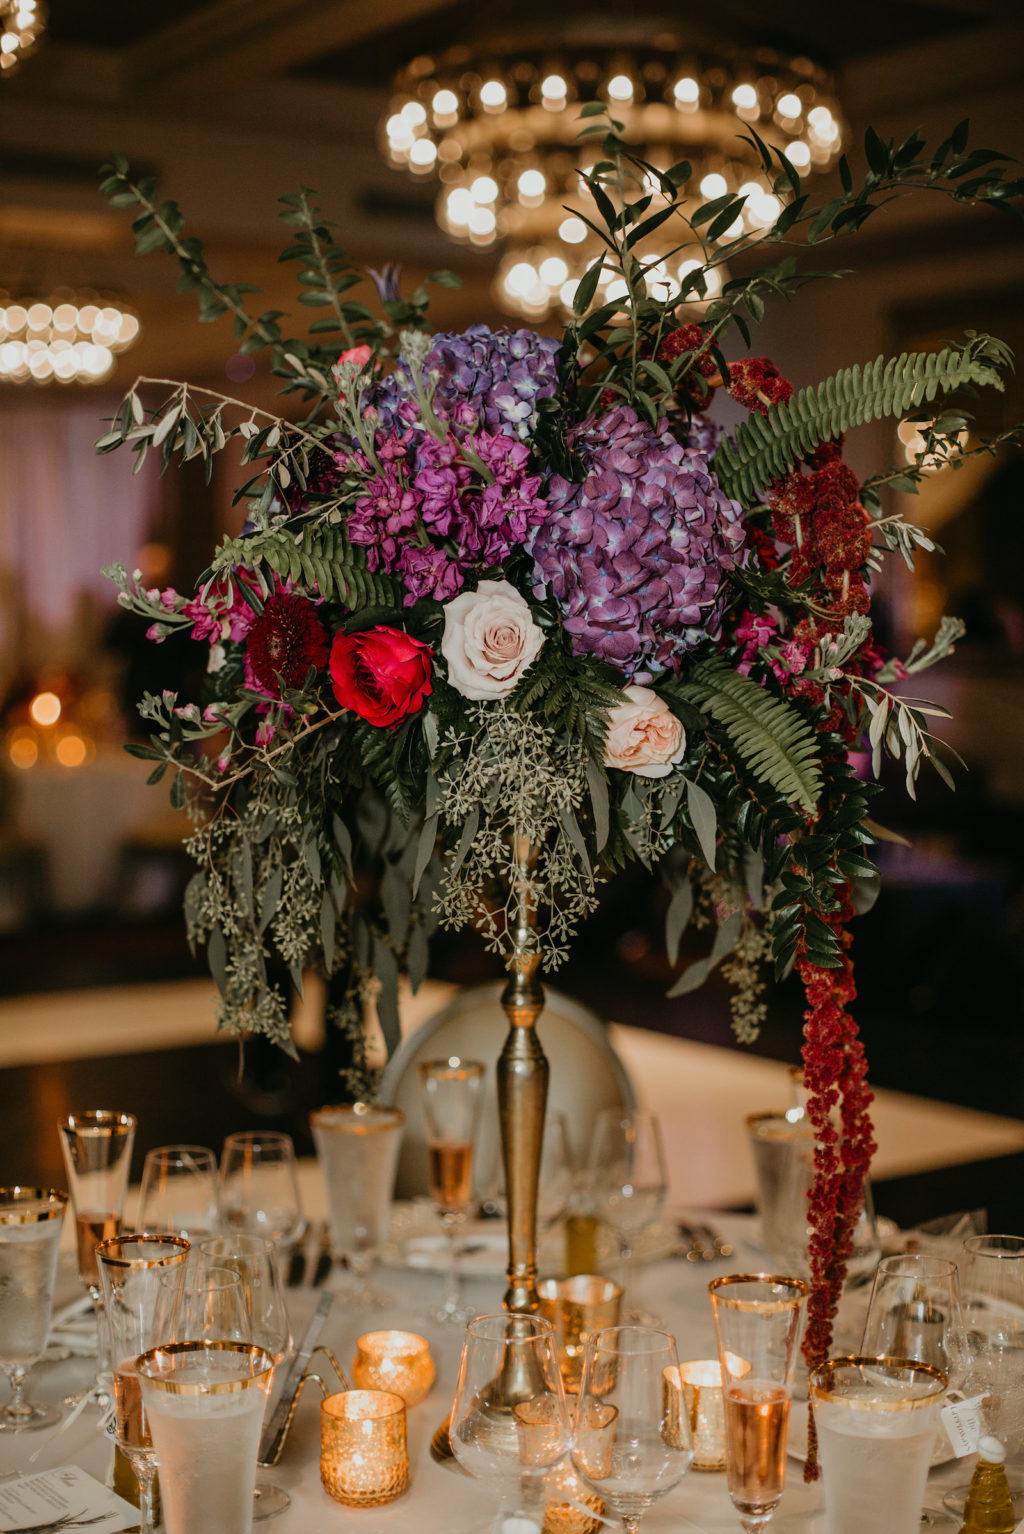 Wedding Centerpiece Inspiration | Tall Candlestick Centerpiece with Loose Cascading Floral Arrangement of Purple Hydrangea, Deep Red Burgundy Roses and Amaranthus, Olive Branches and Eucalyptus Greenery